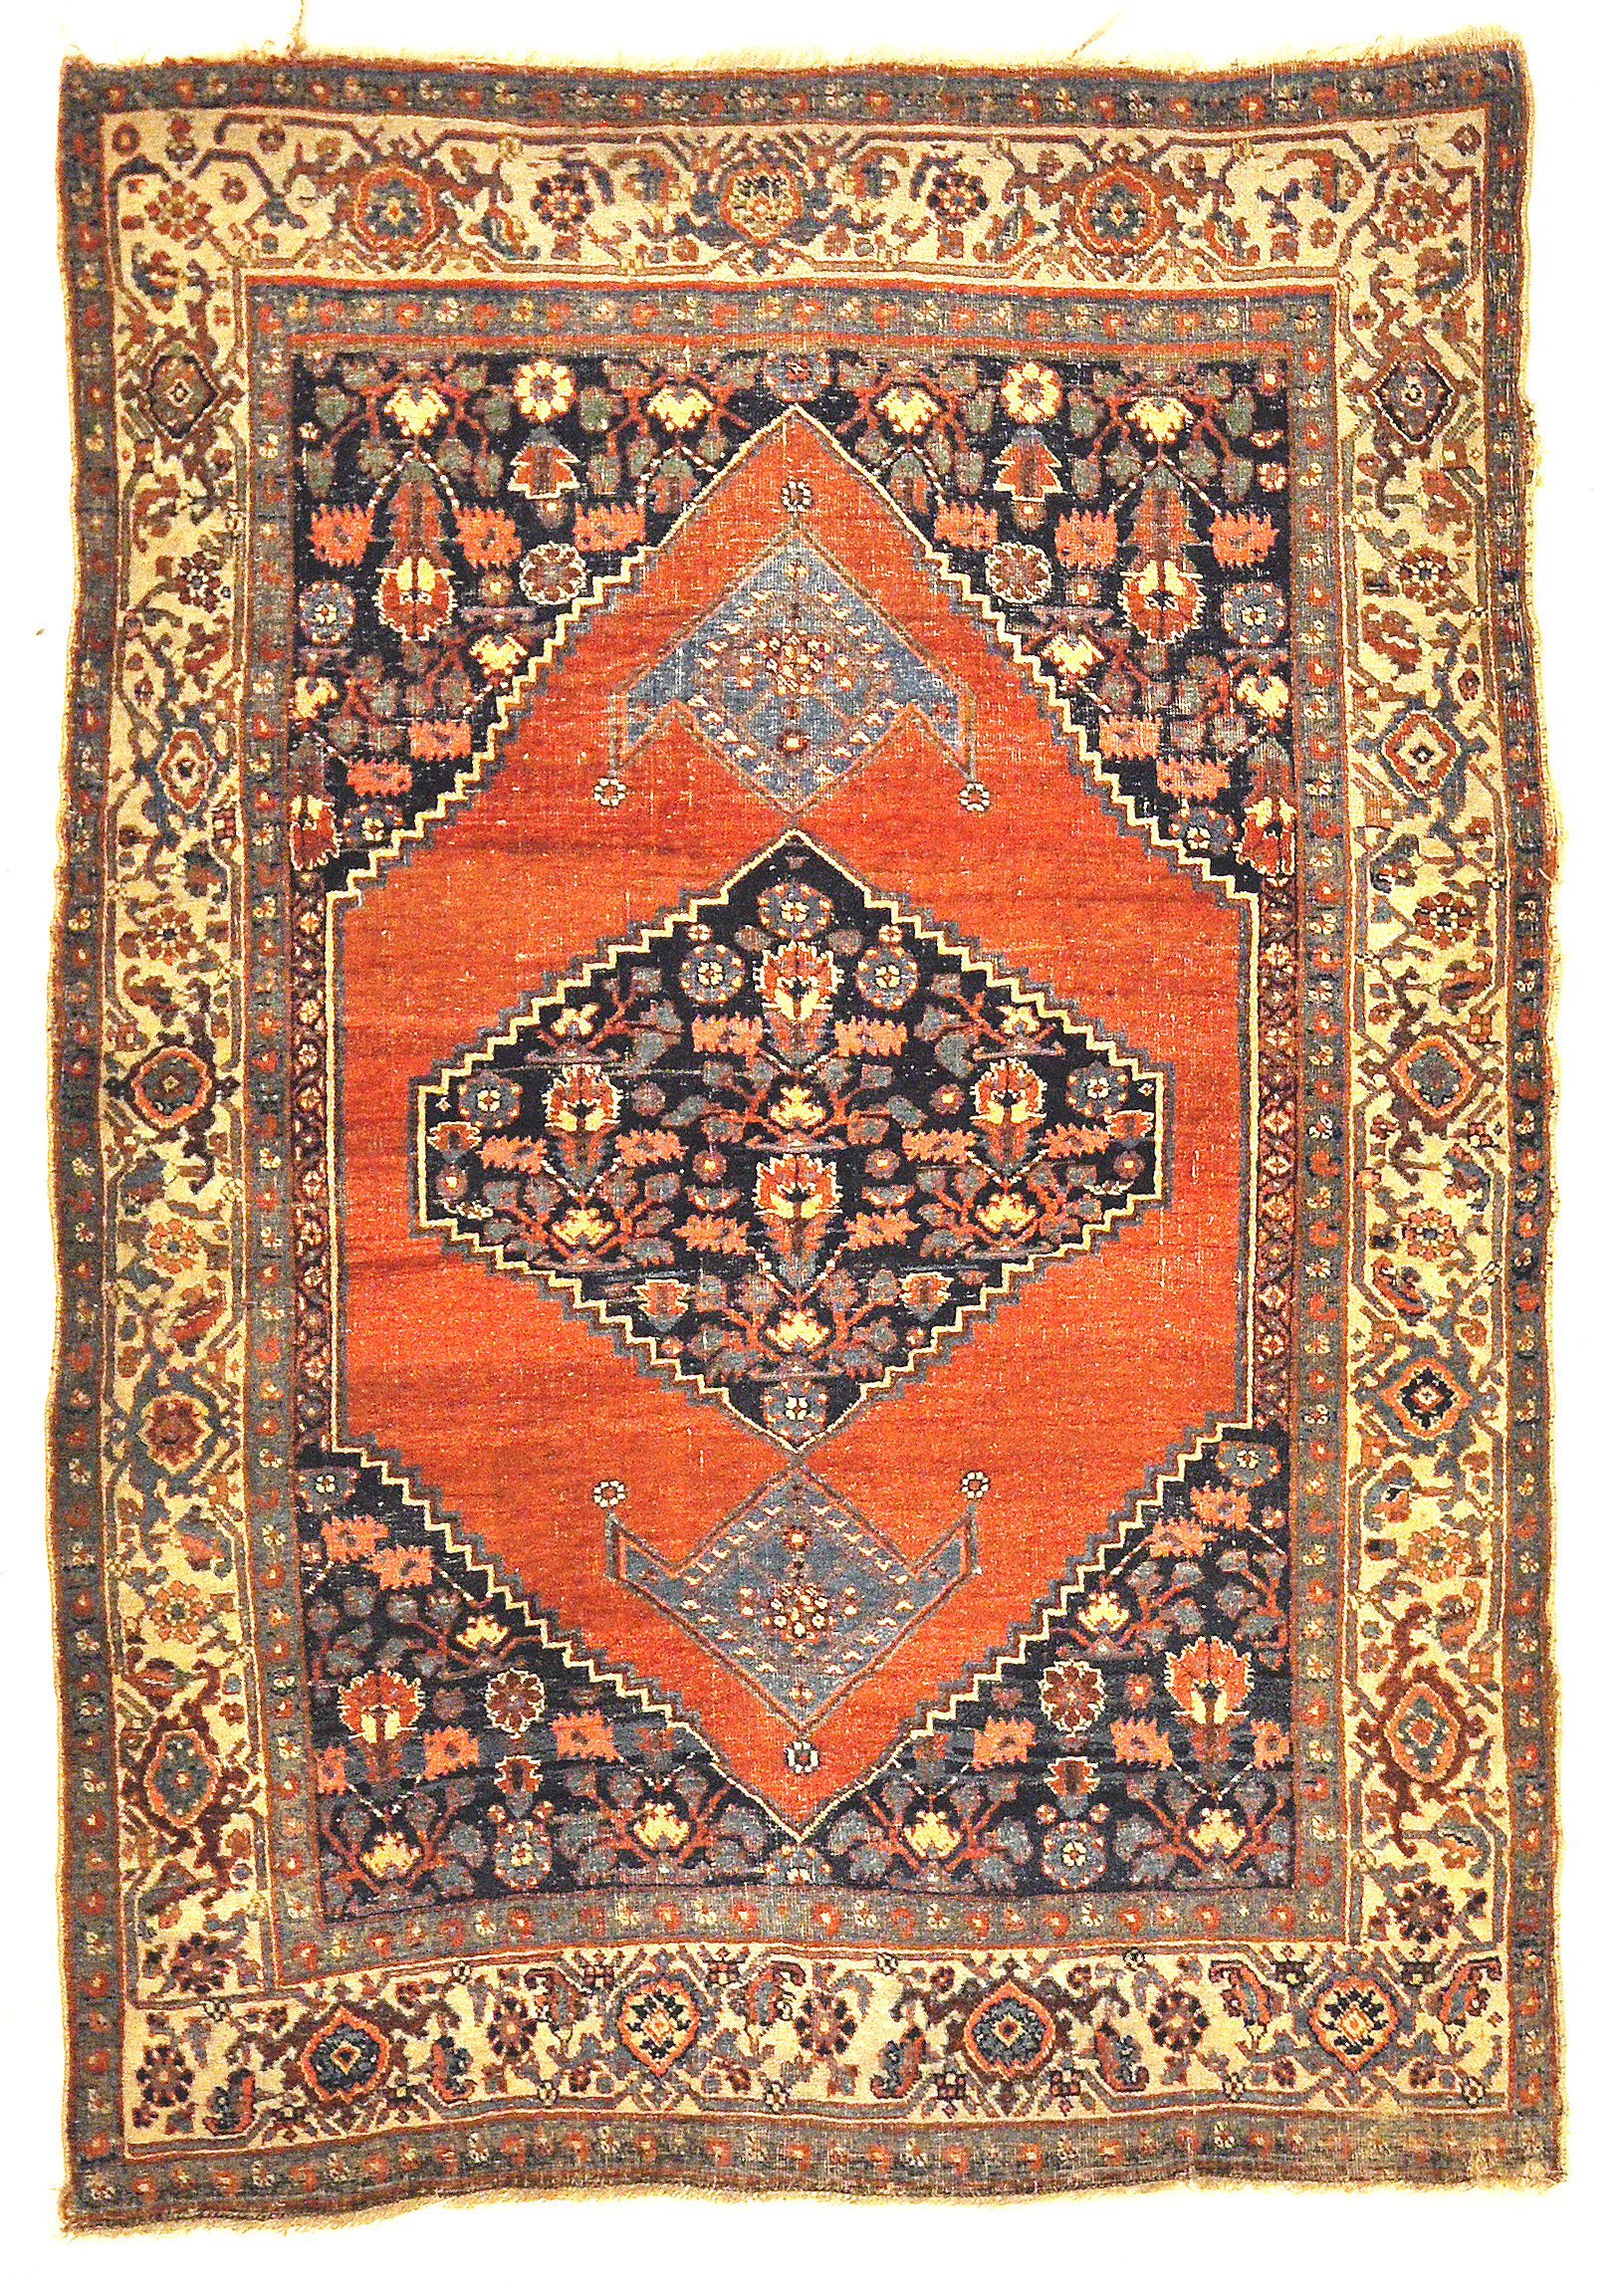 Antique Halvai Bijar Mid 19th Century Wool Foundation Genuine Authentic Carpet Art Santa Barbara Design Center Rugs and More